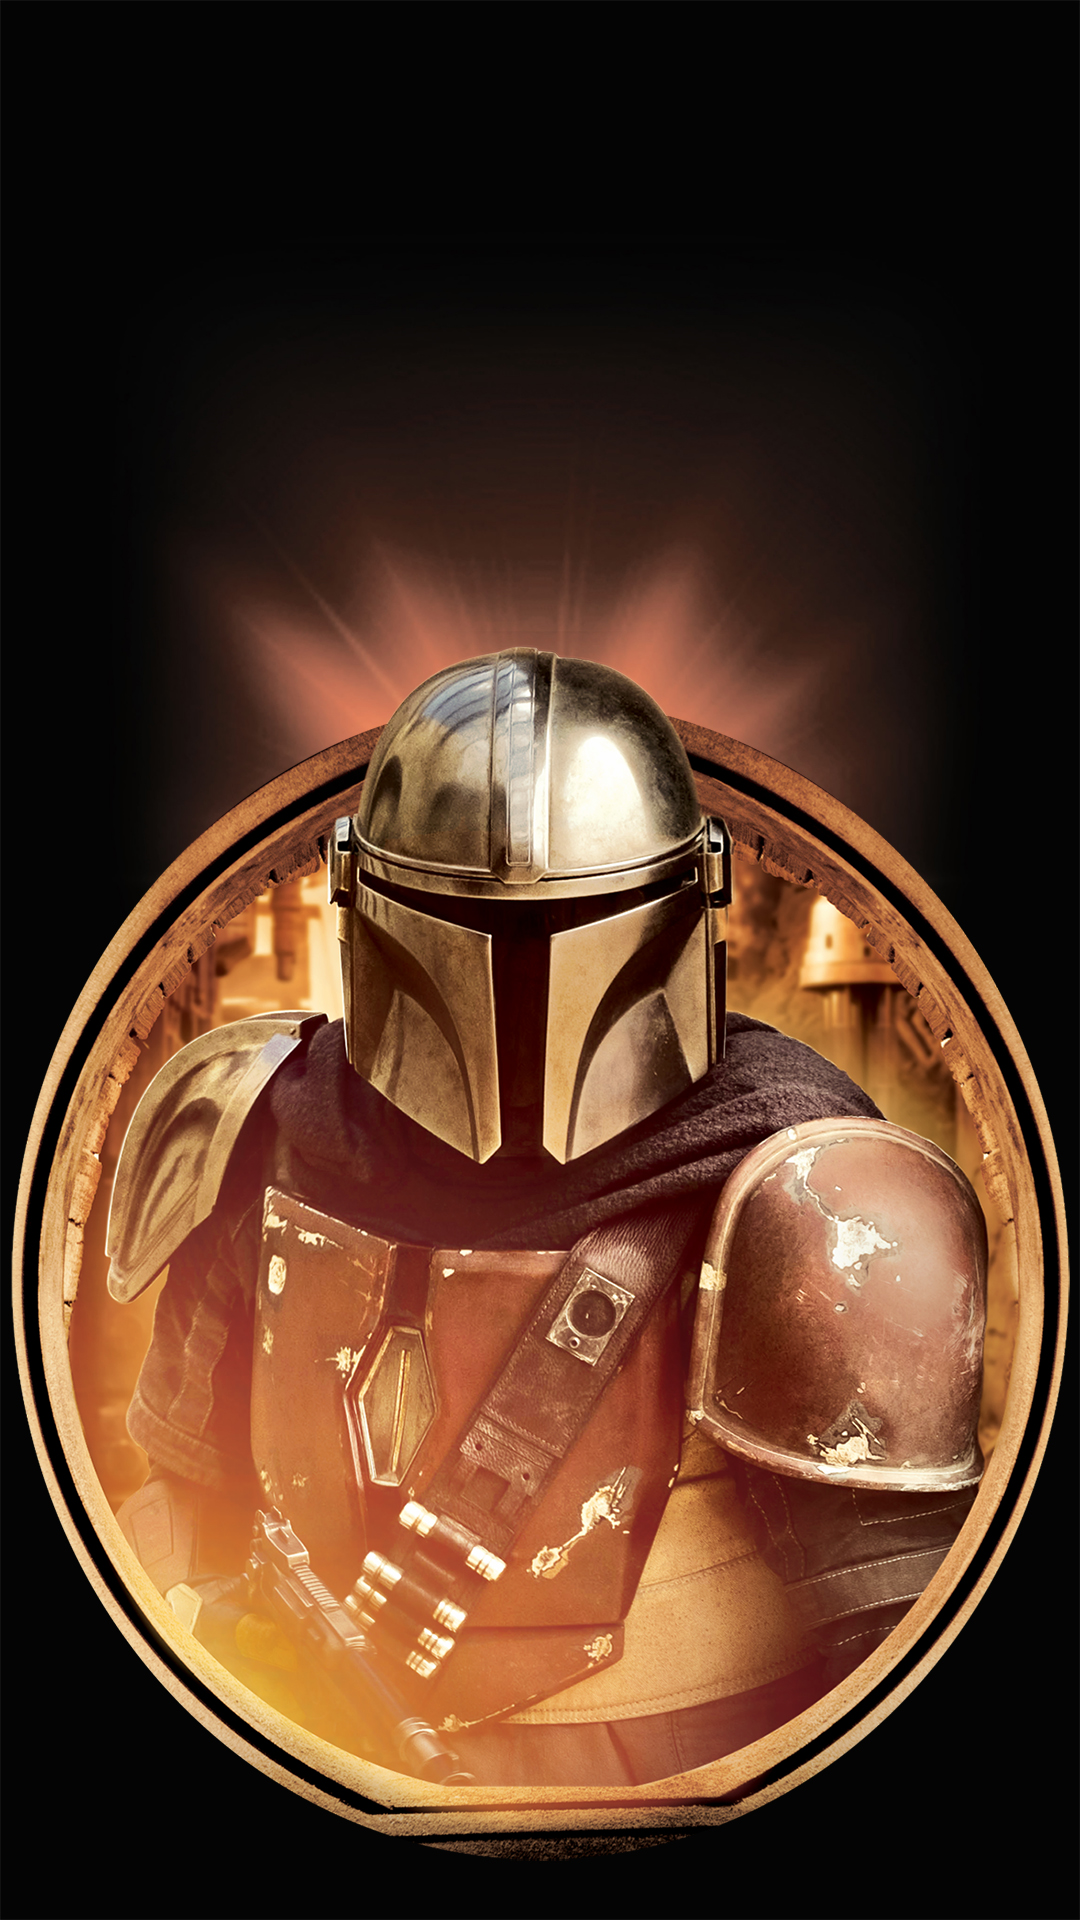 The Mandalorian HD phone wallpapers 1080p - YouLoveIt.com